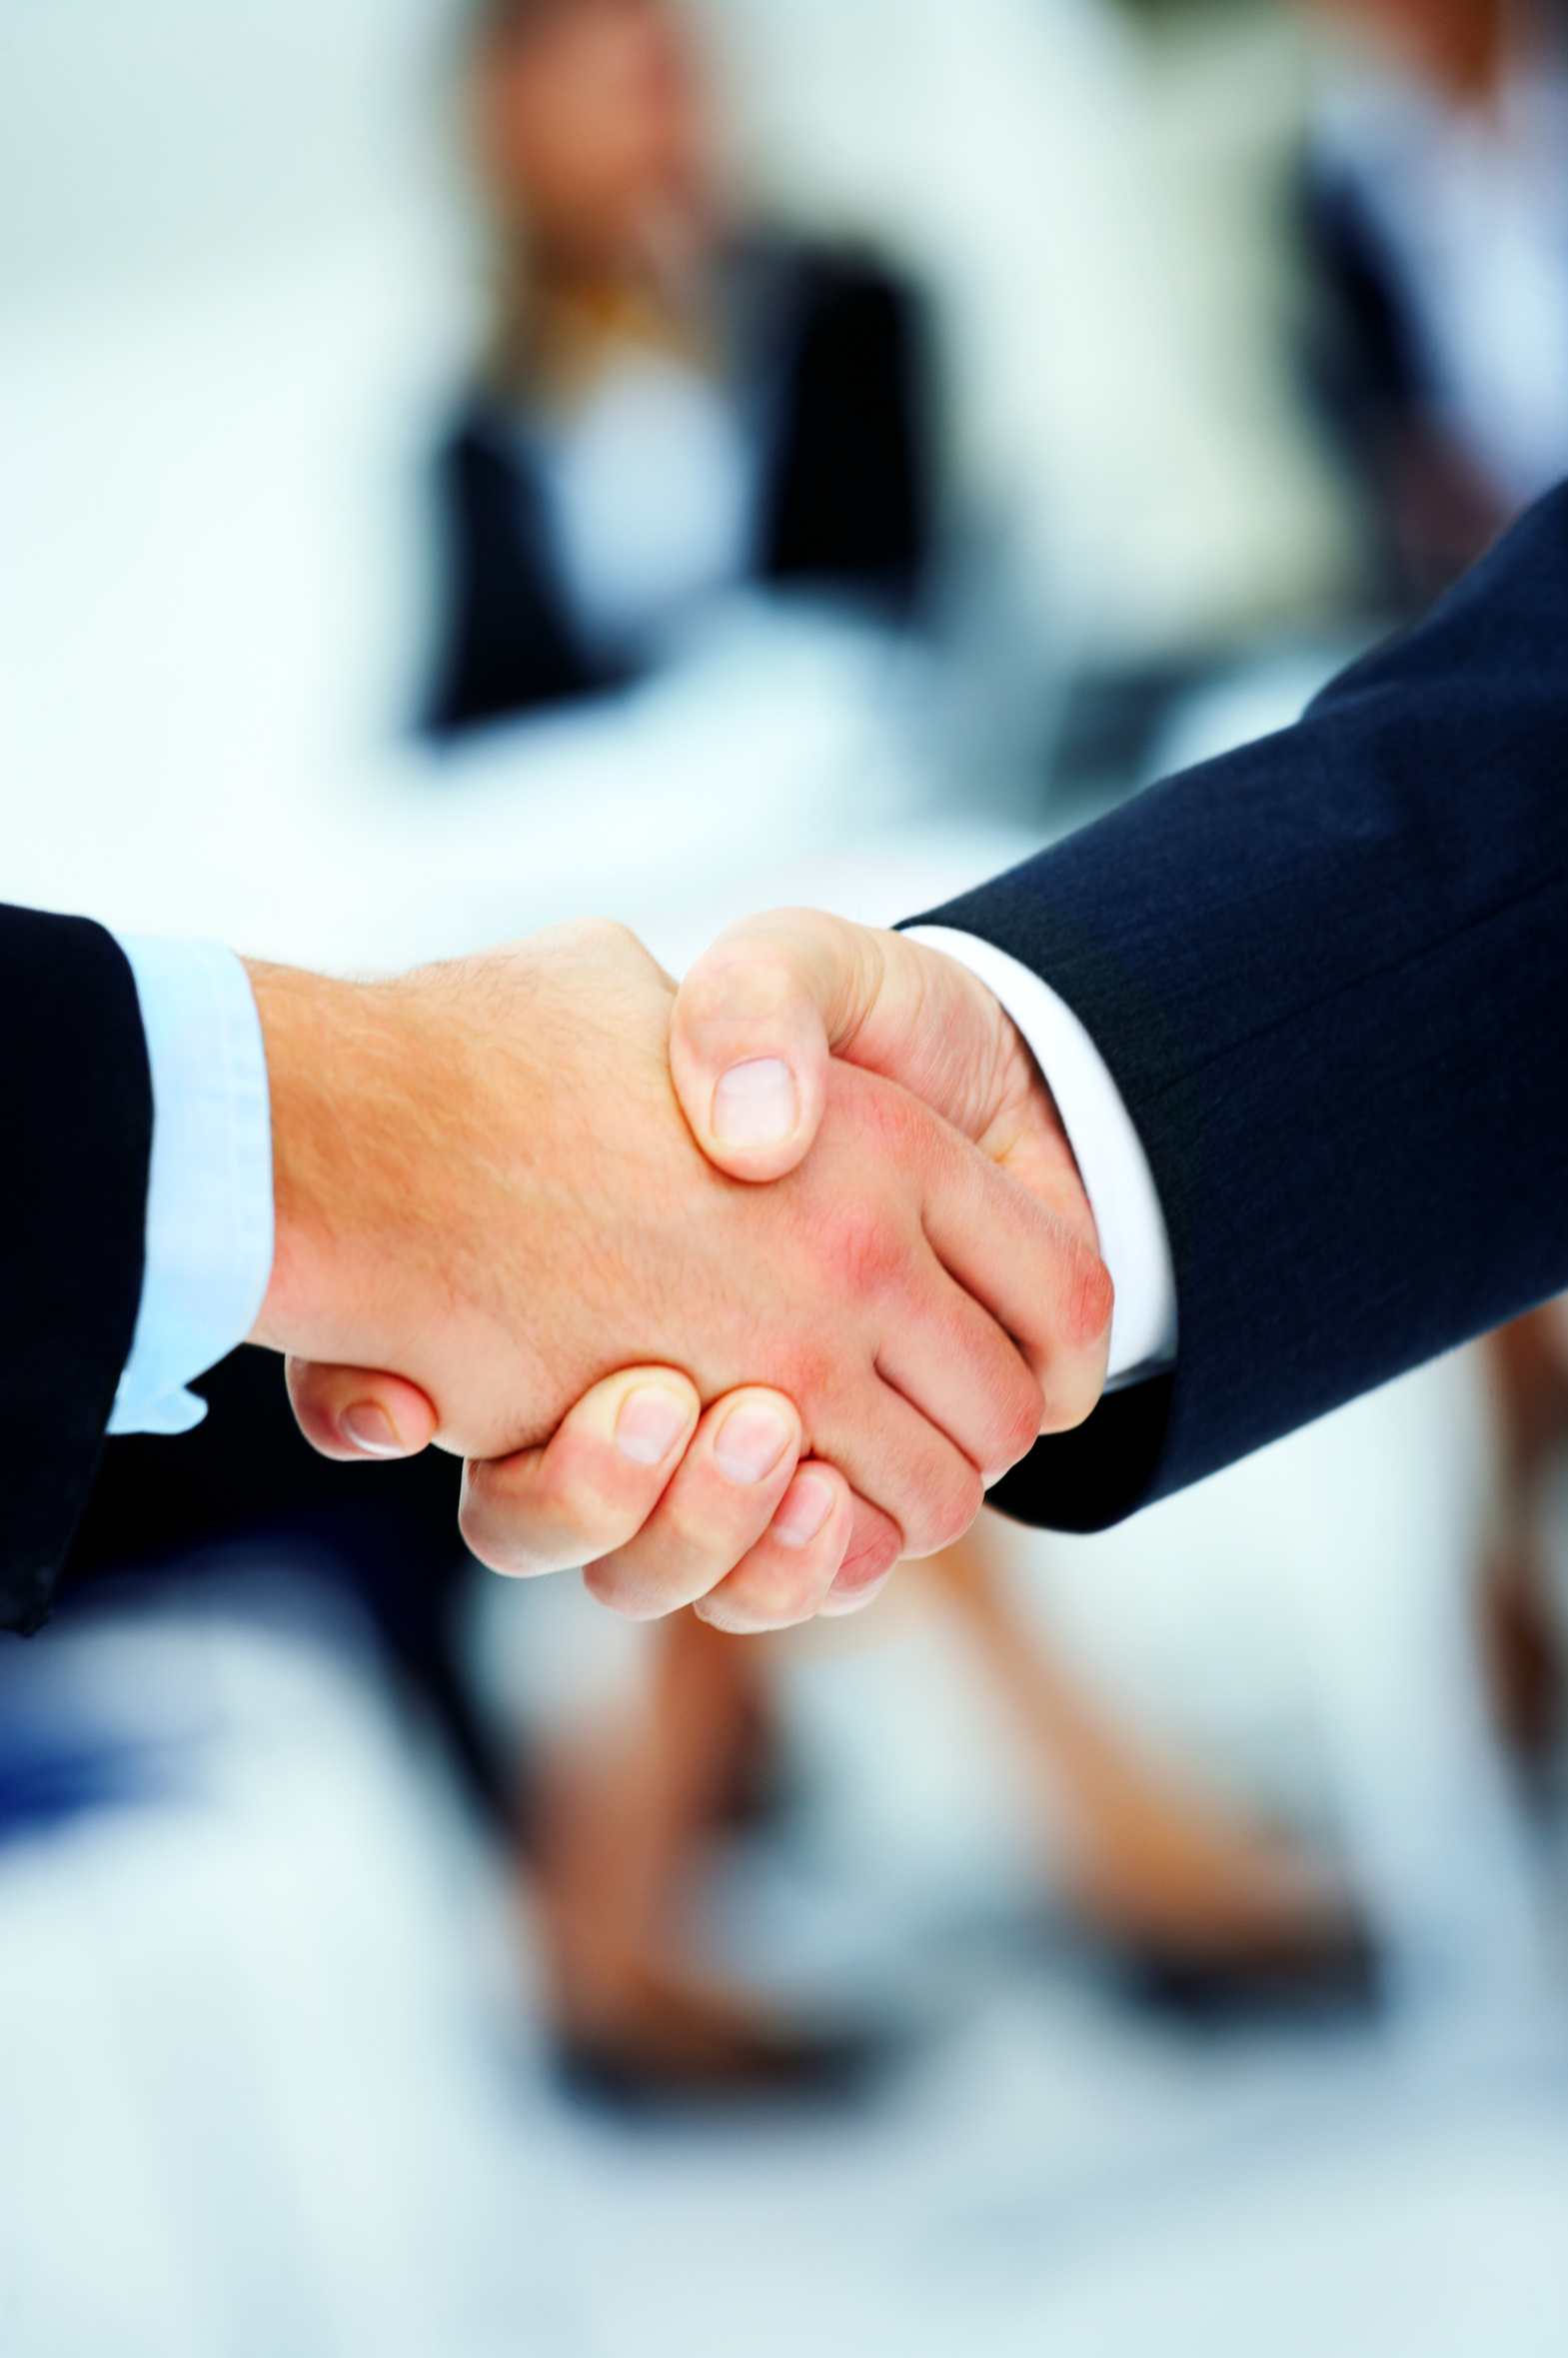 Teamwork and team spirit - Business handshake